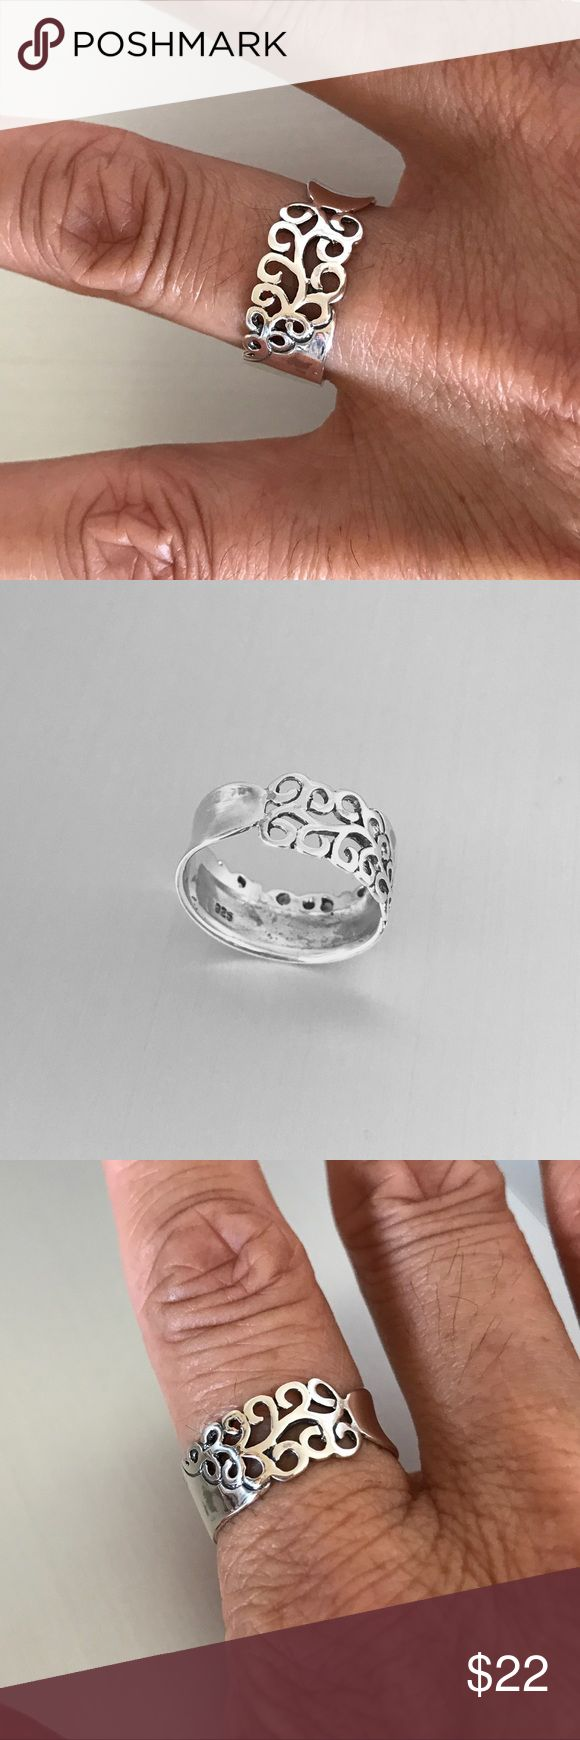 Sterling Silver Band with Vines Ring Sterling Silver Band with Vines Ring 💍 Index Ring 💍 Thumb Ring 💍 Wide Band 💍 925 Sterling Silver, Face Height 9 mm, THIS RING RUN ABOUT HALF SIZE SMALL! Jewelry Rings